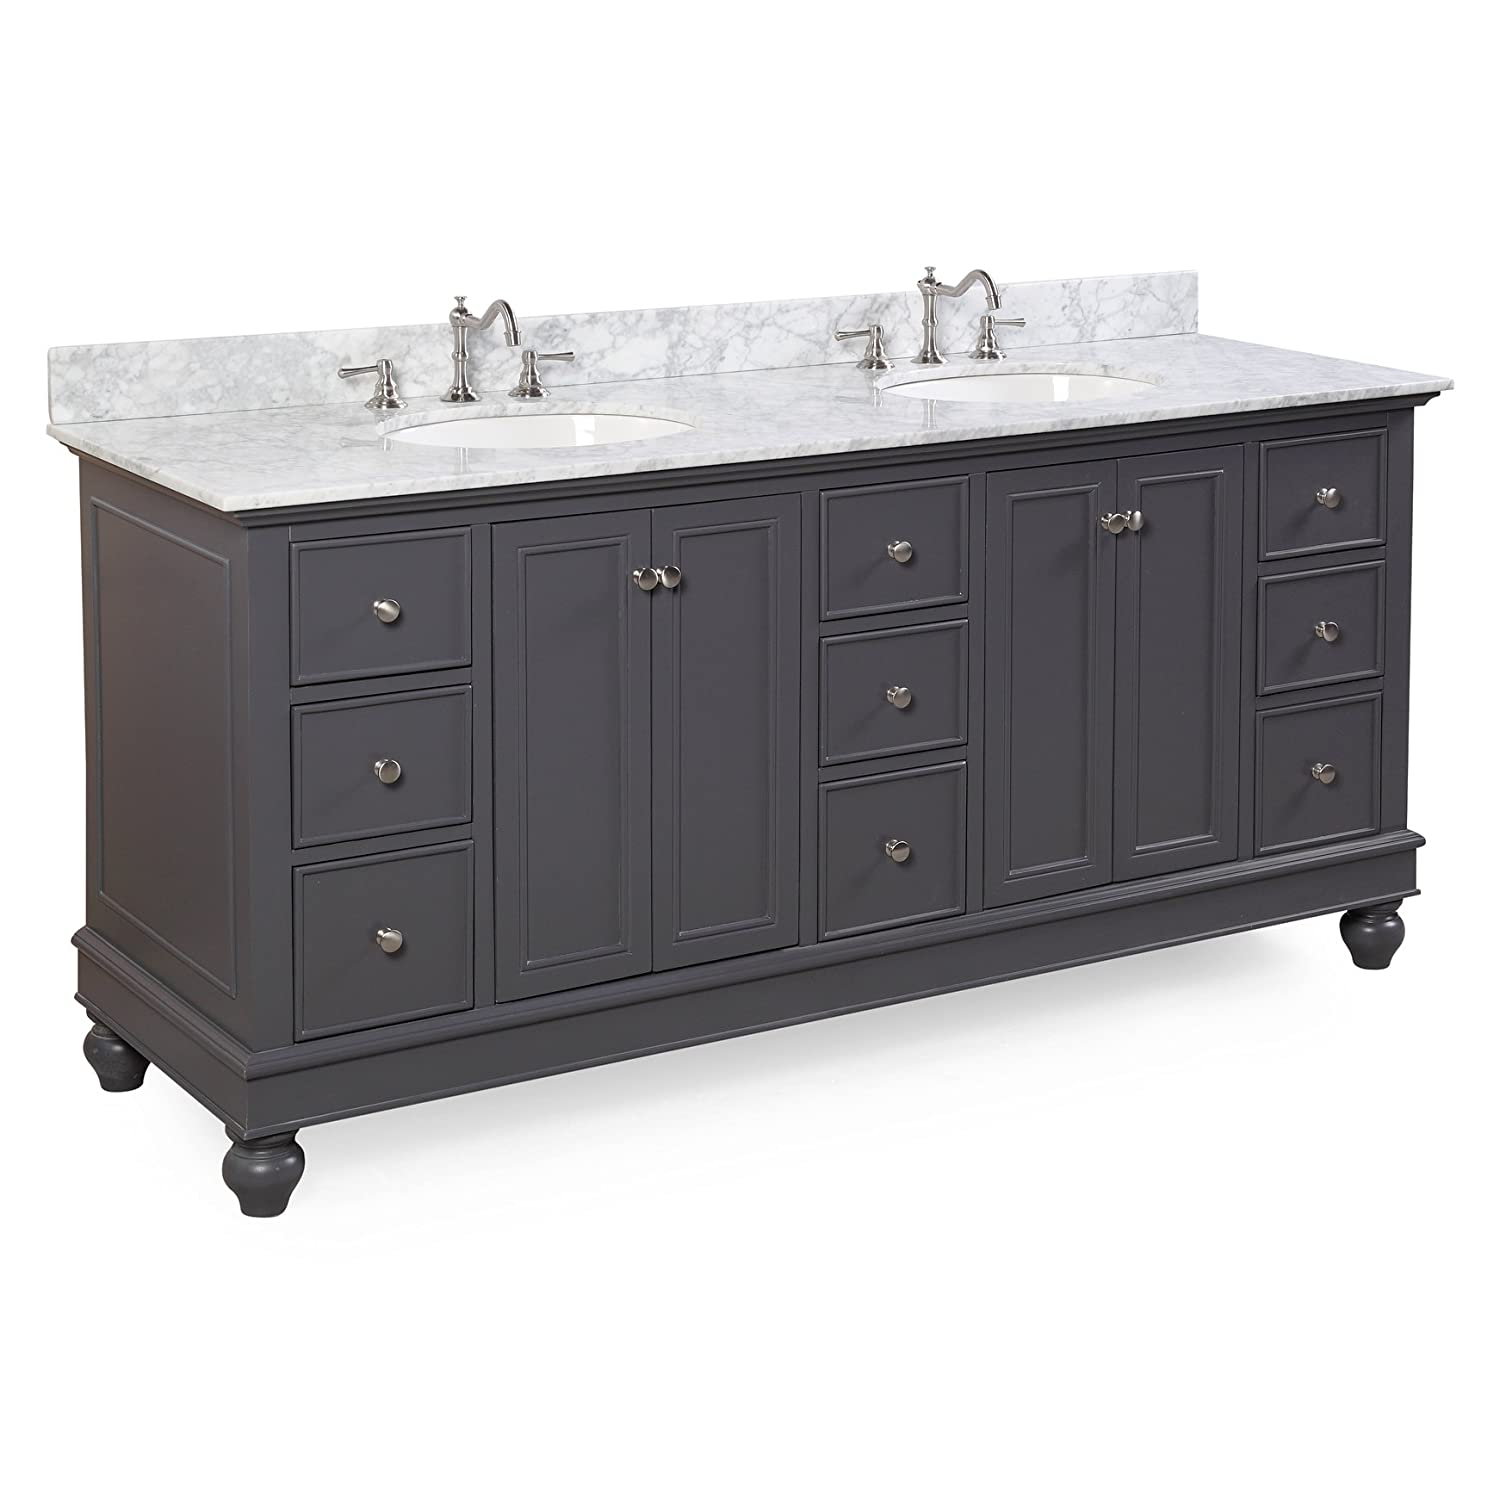 Bella 72-inch Bathroom Vanity Carrara Charcoal Gray Includes Charcoal Gray Cabinet with Soft Close Drawers, Authentic Italian Carrara Marble Countertop, and Two Ceramic Sinks